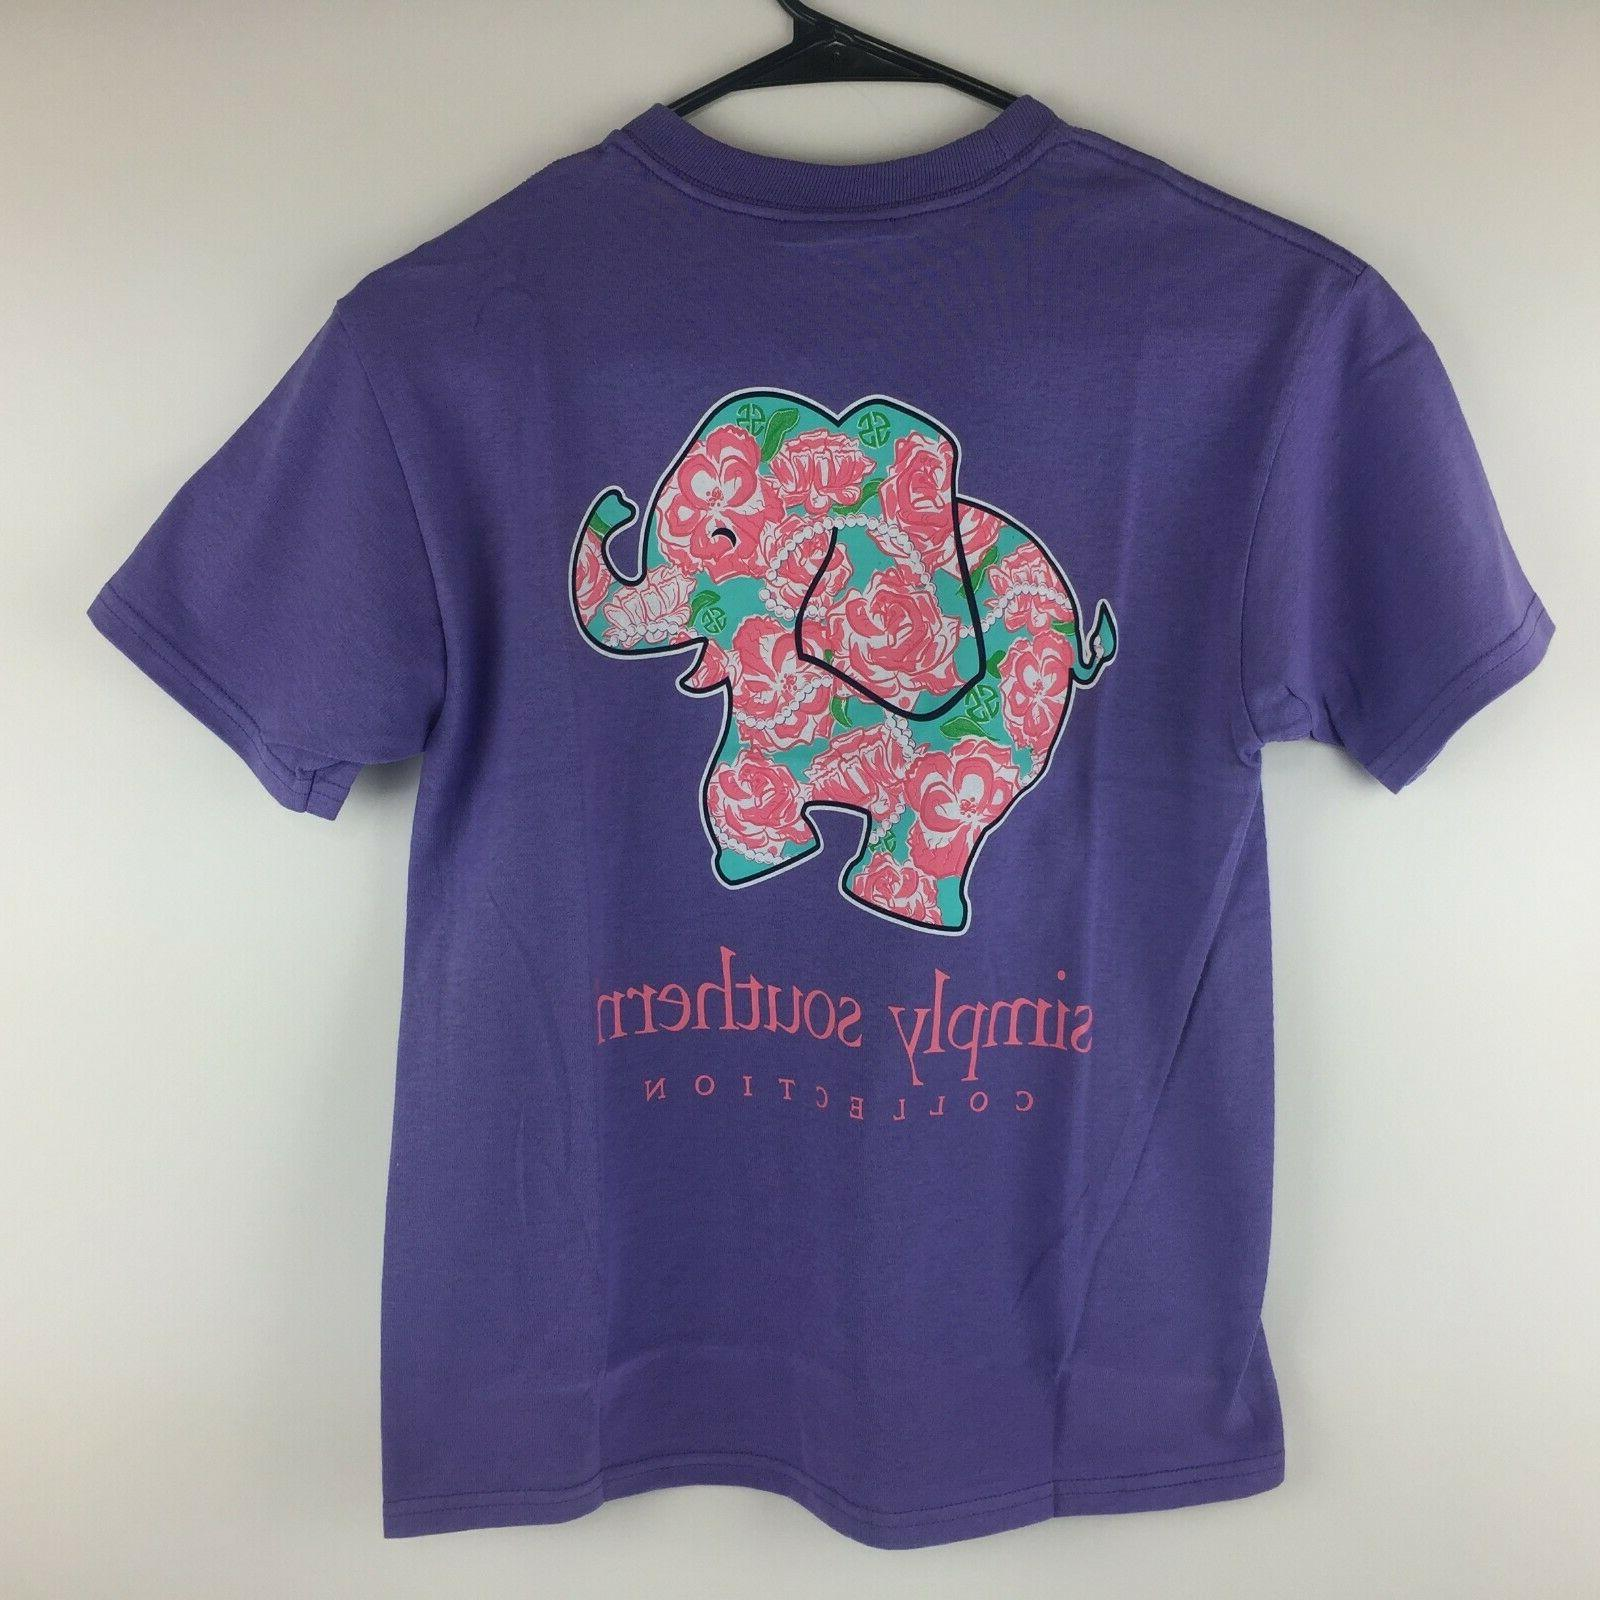 tee youth small t shirt elephant flowers